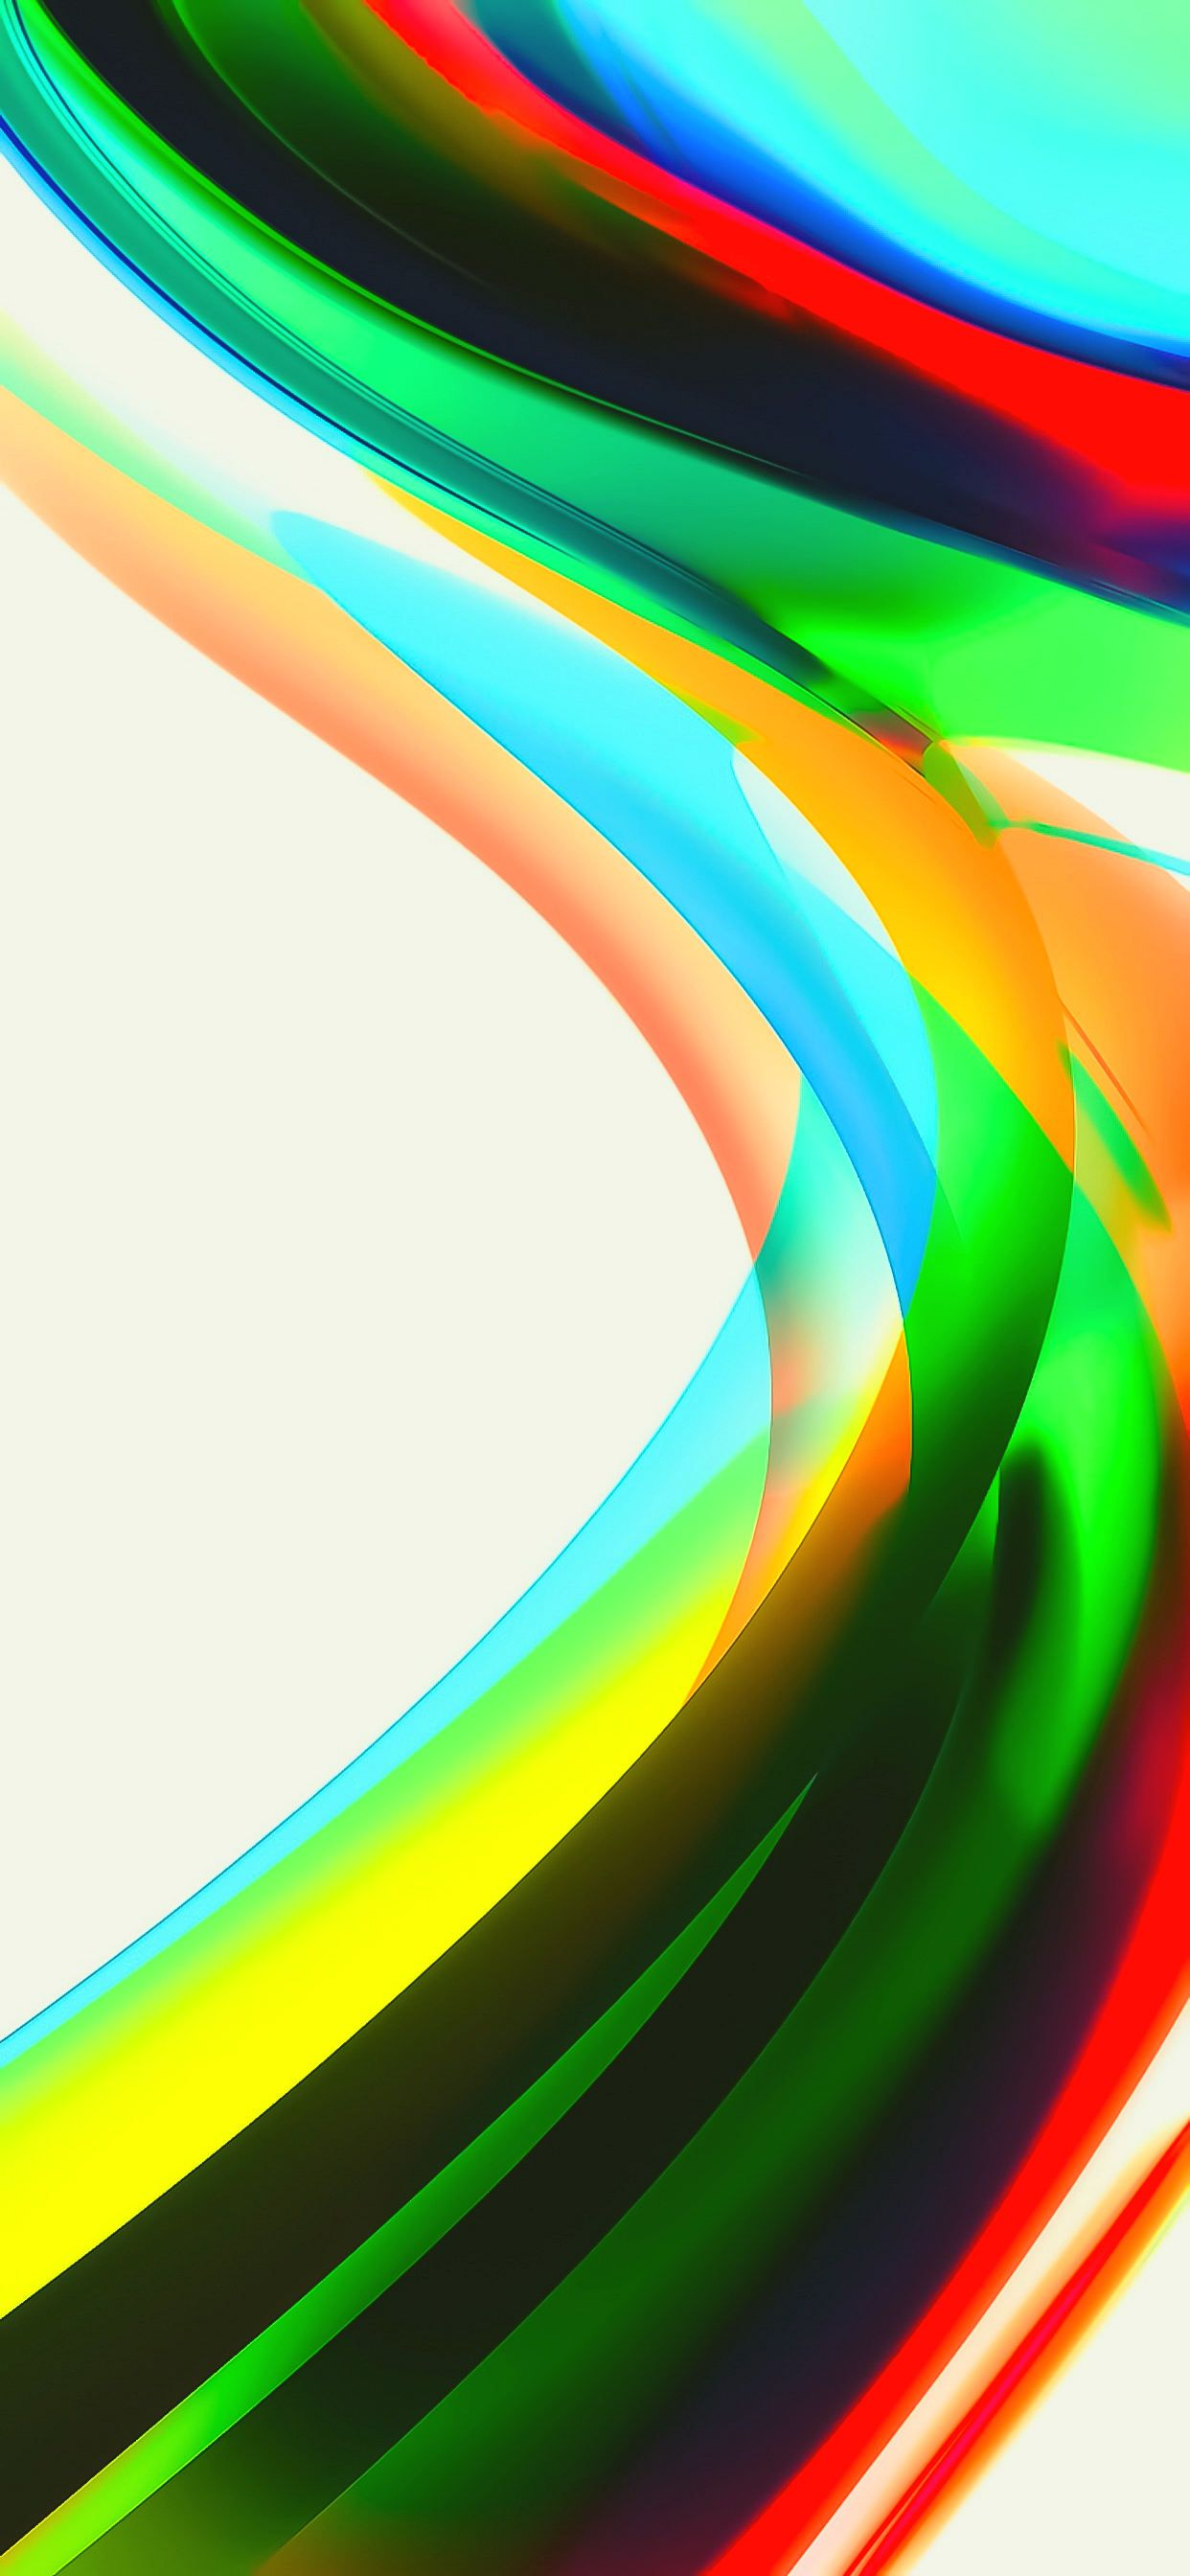 Oppo A9 Abstract Mobile Hd Wallpapers 1242x2688 Wallpaper Downloads Abstract 4k Wallpaper Download